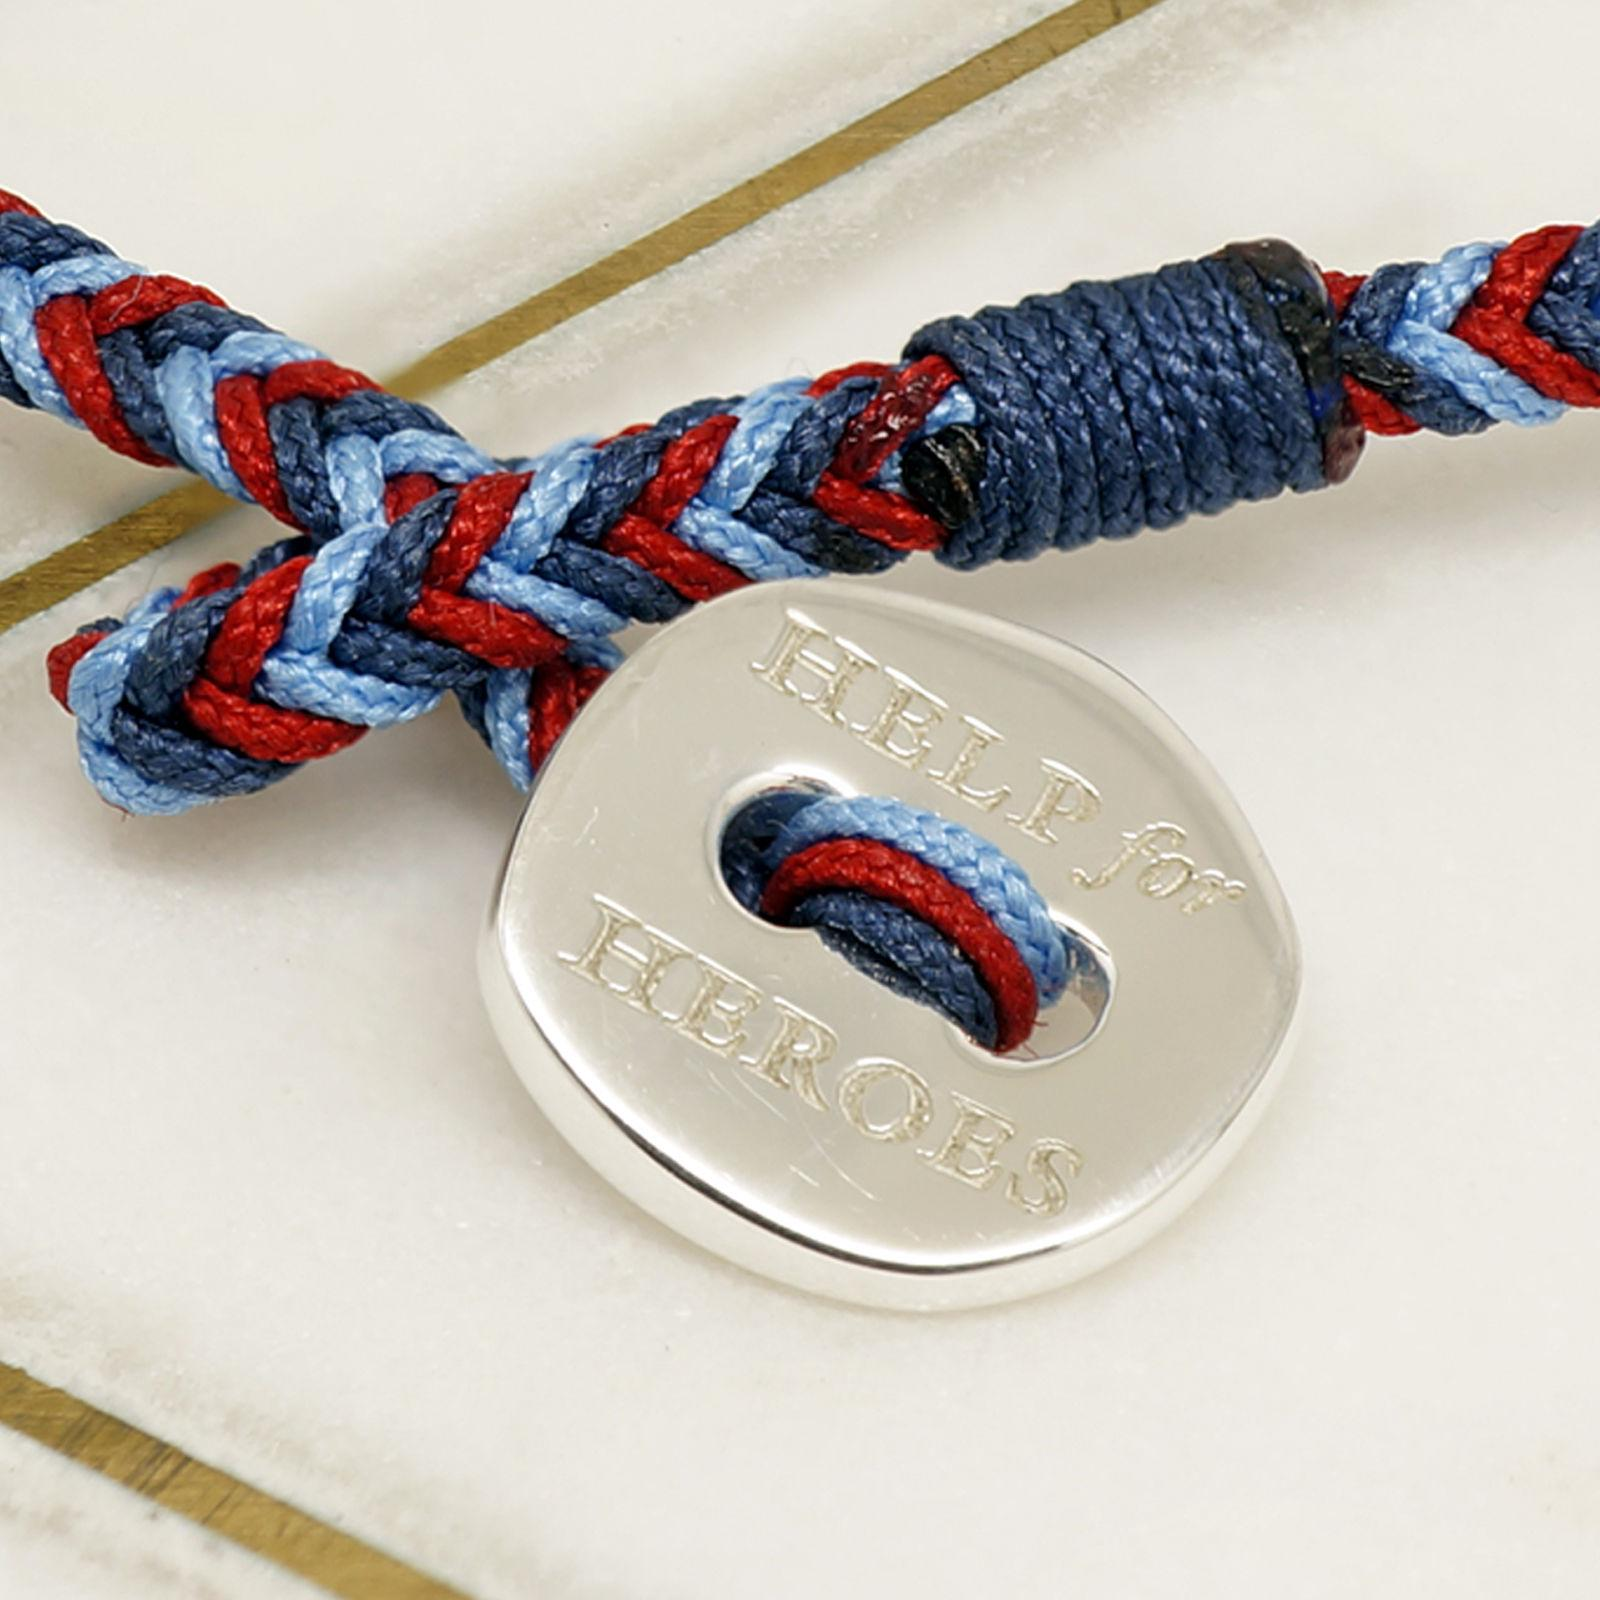 Official Help For Heroes Leather and Cord Bracelets suitable for Men and Women.